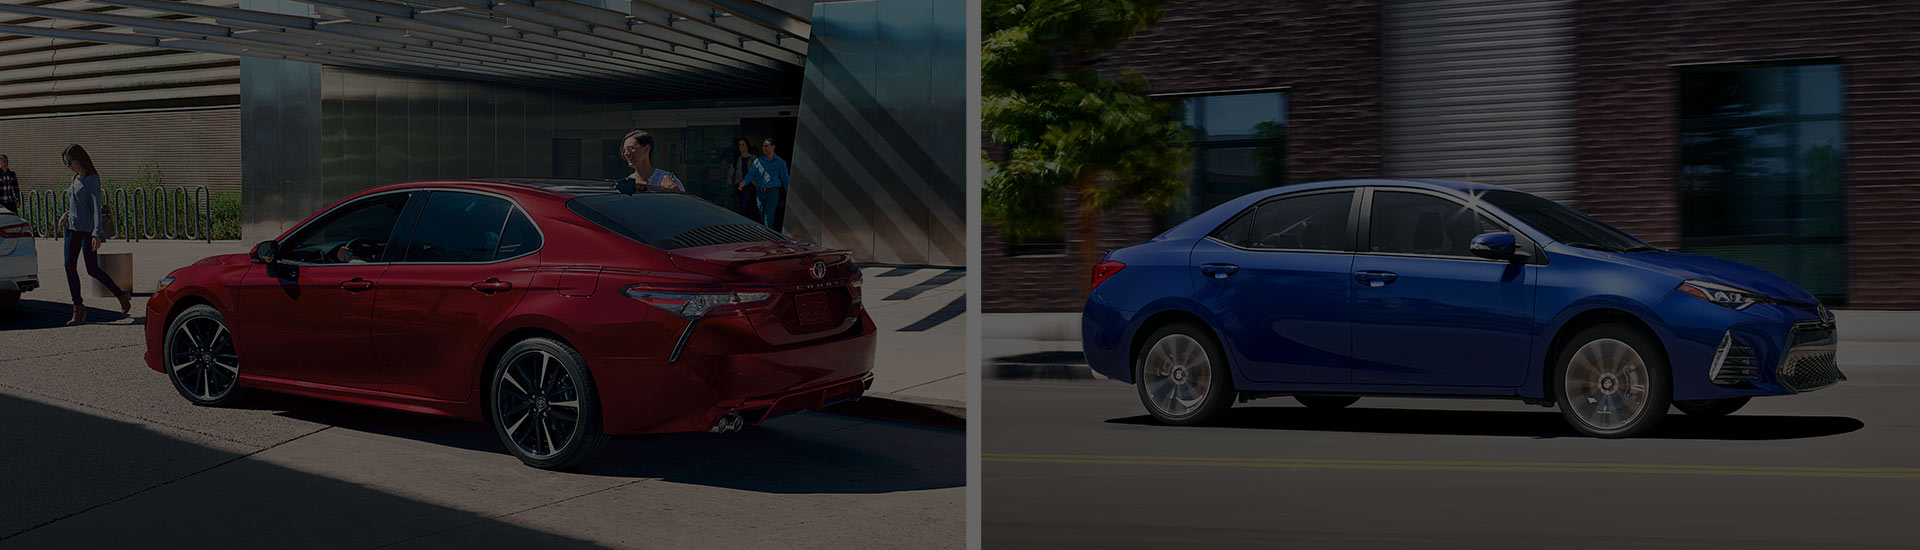 The 2018 Toyota Camry and 2018 Toyota Corolla is available at Rivertown Toyota in Columbus, GA